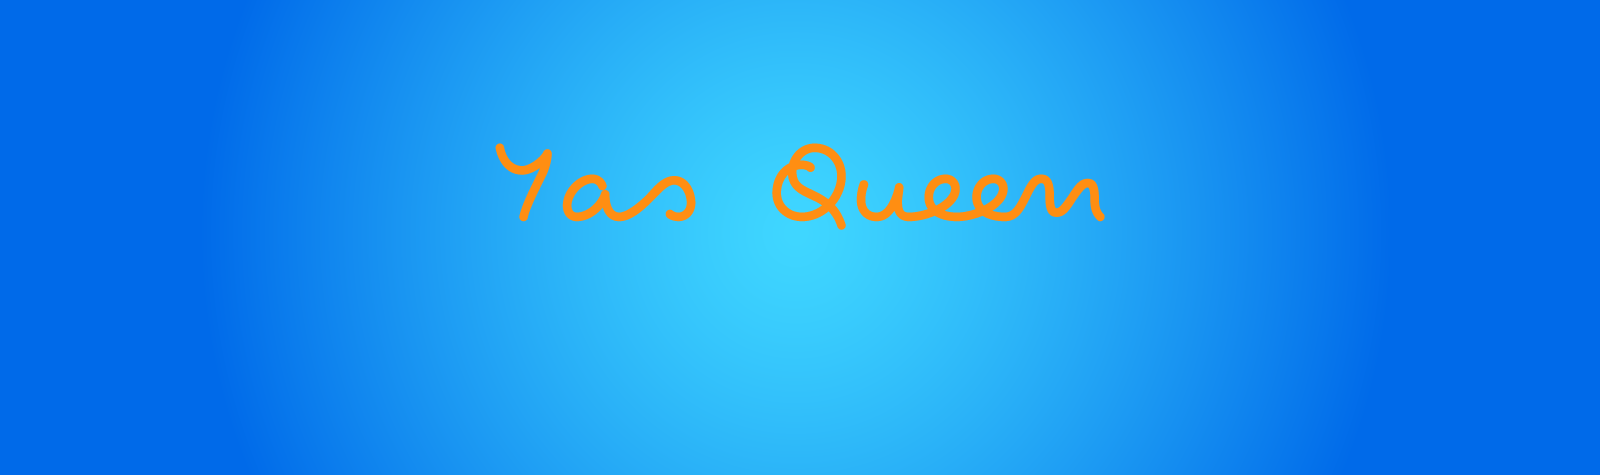 A Mediterranean island and a typeface